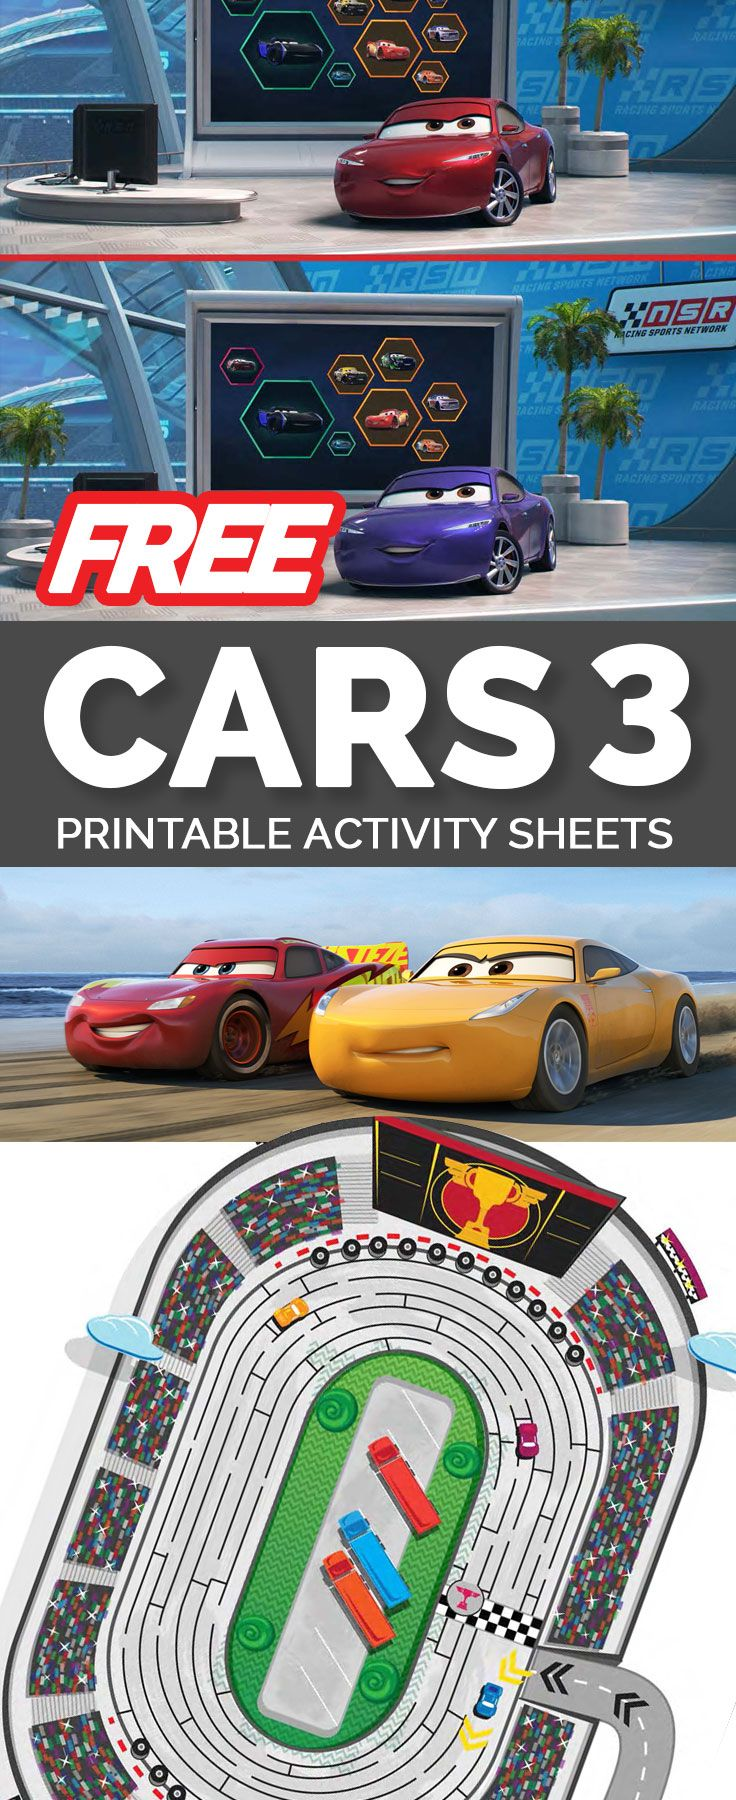 cars 3 printable activity sheets free to download and print